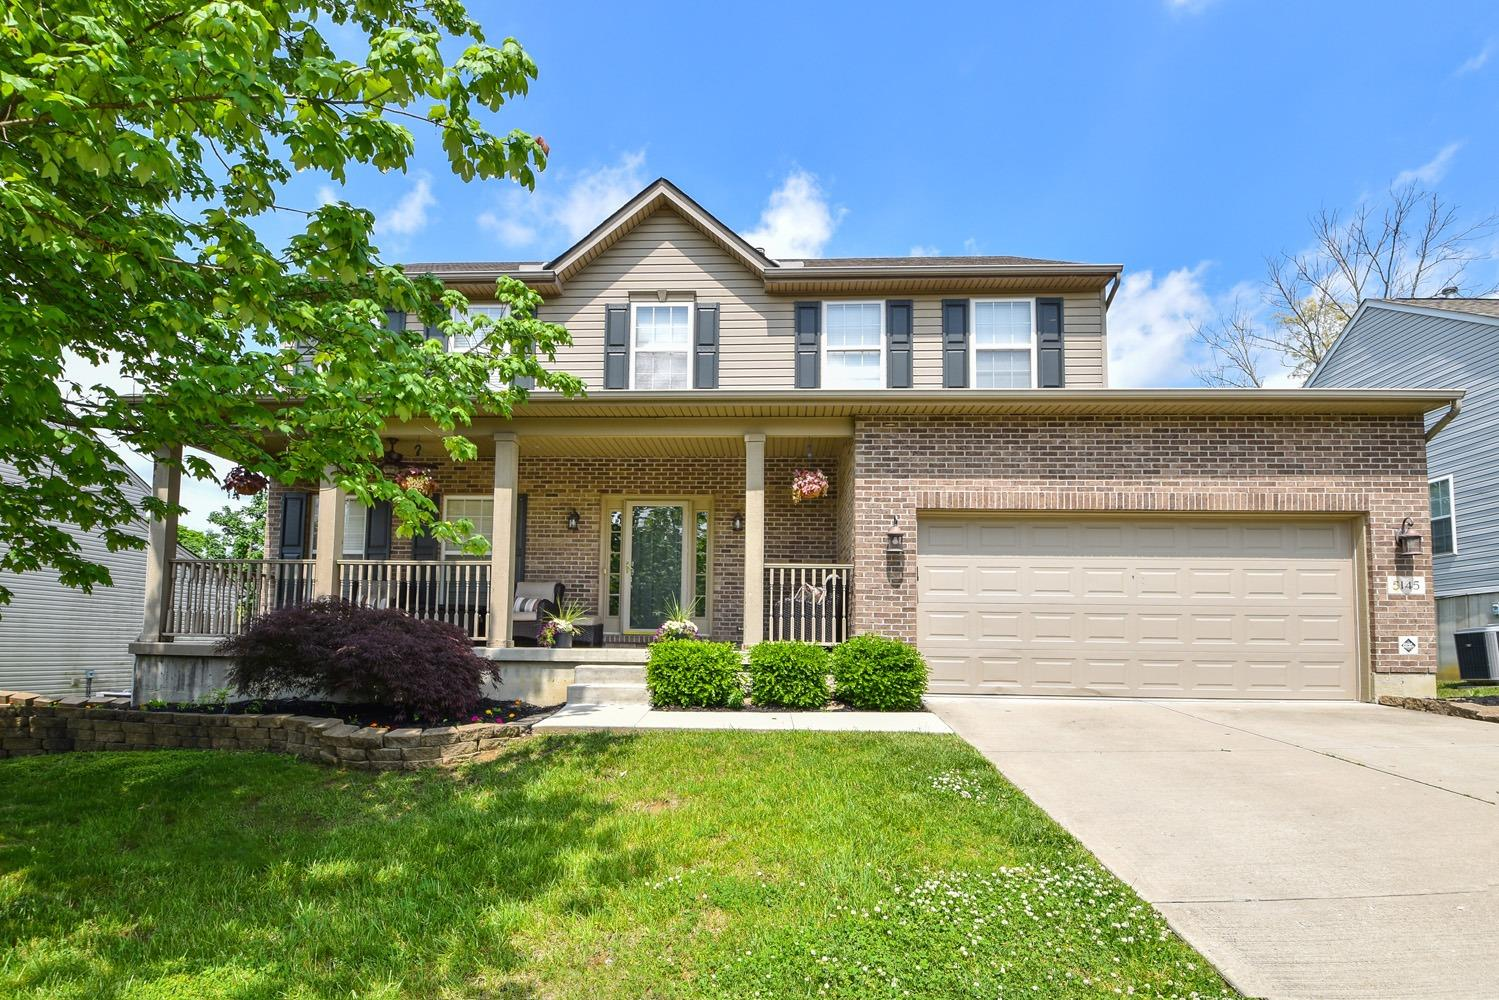 5145 Parkvalley Ct Monfort Hts., OH